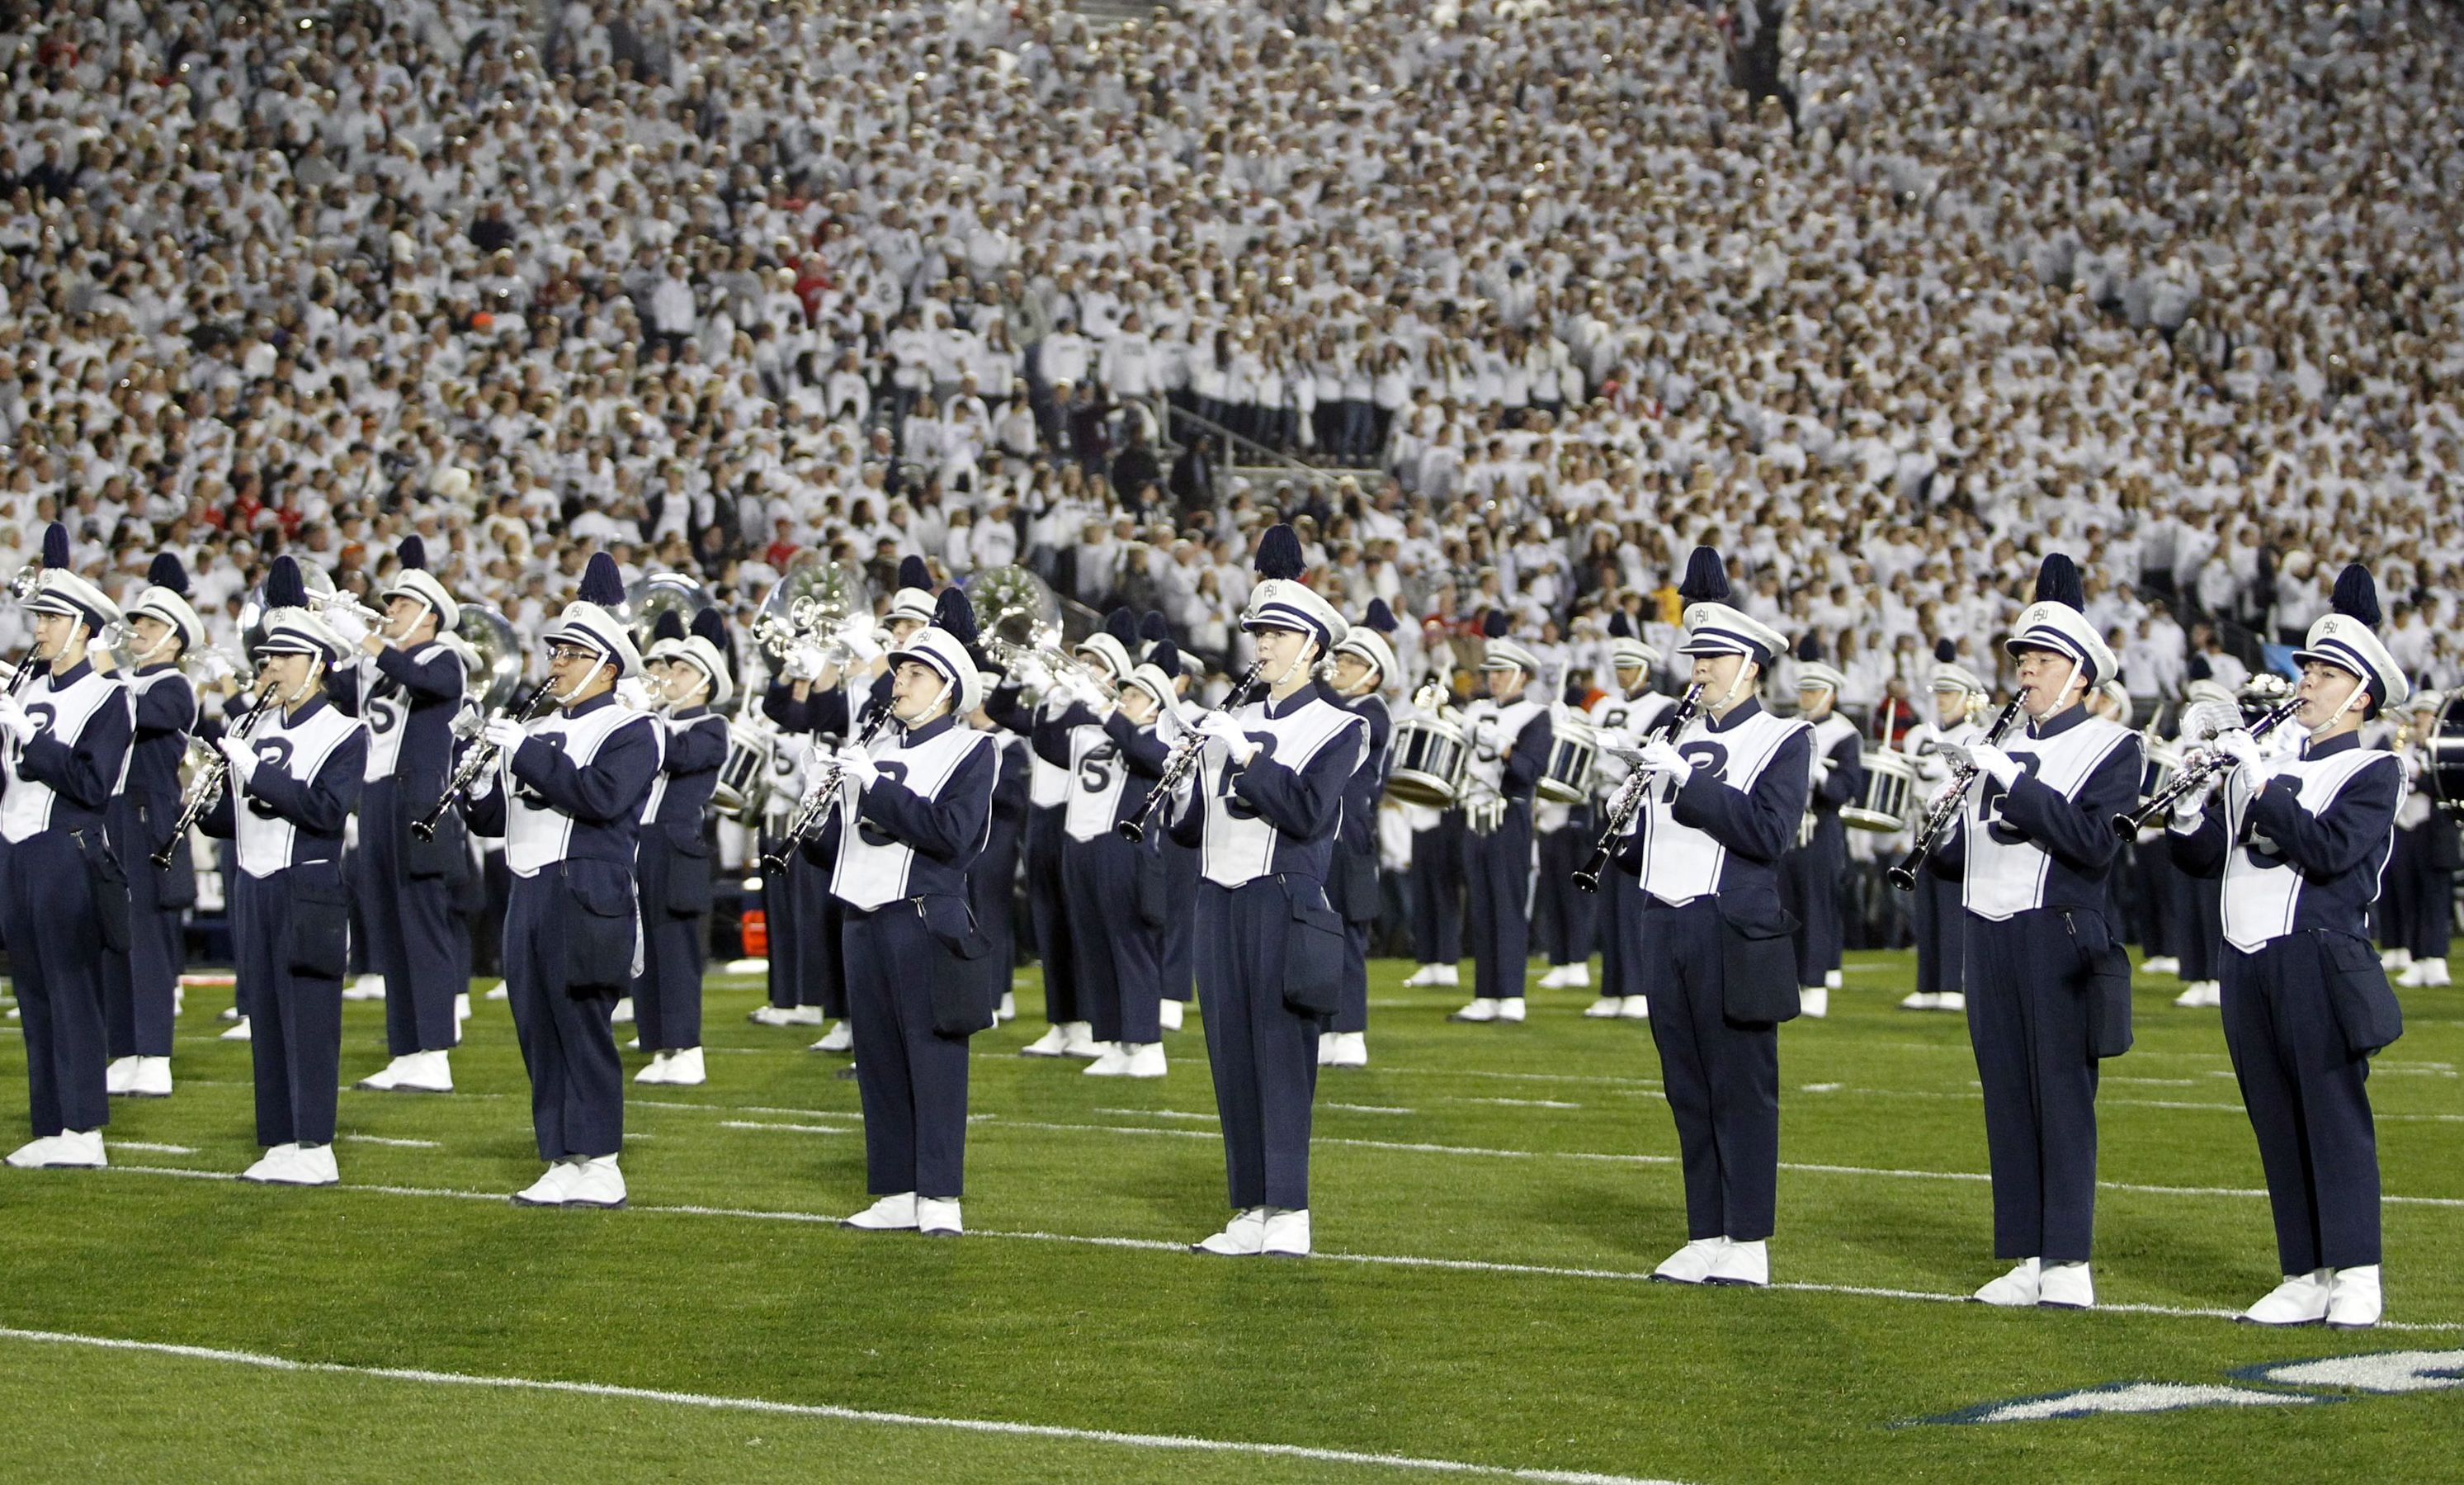 STATE COLLEGE, PA - OCTOBER 25:  The Penn State Nittany Lions marching band performs during the game against the Ohio State Buckeyes on October 25, 2014 at Beaver Stadium in State College, Pennsylvania.  (Photo by Justin K. Aller/Getty Images)